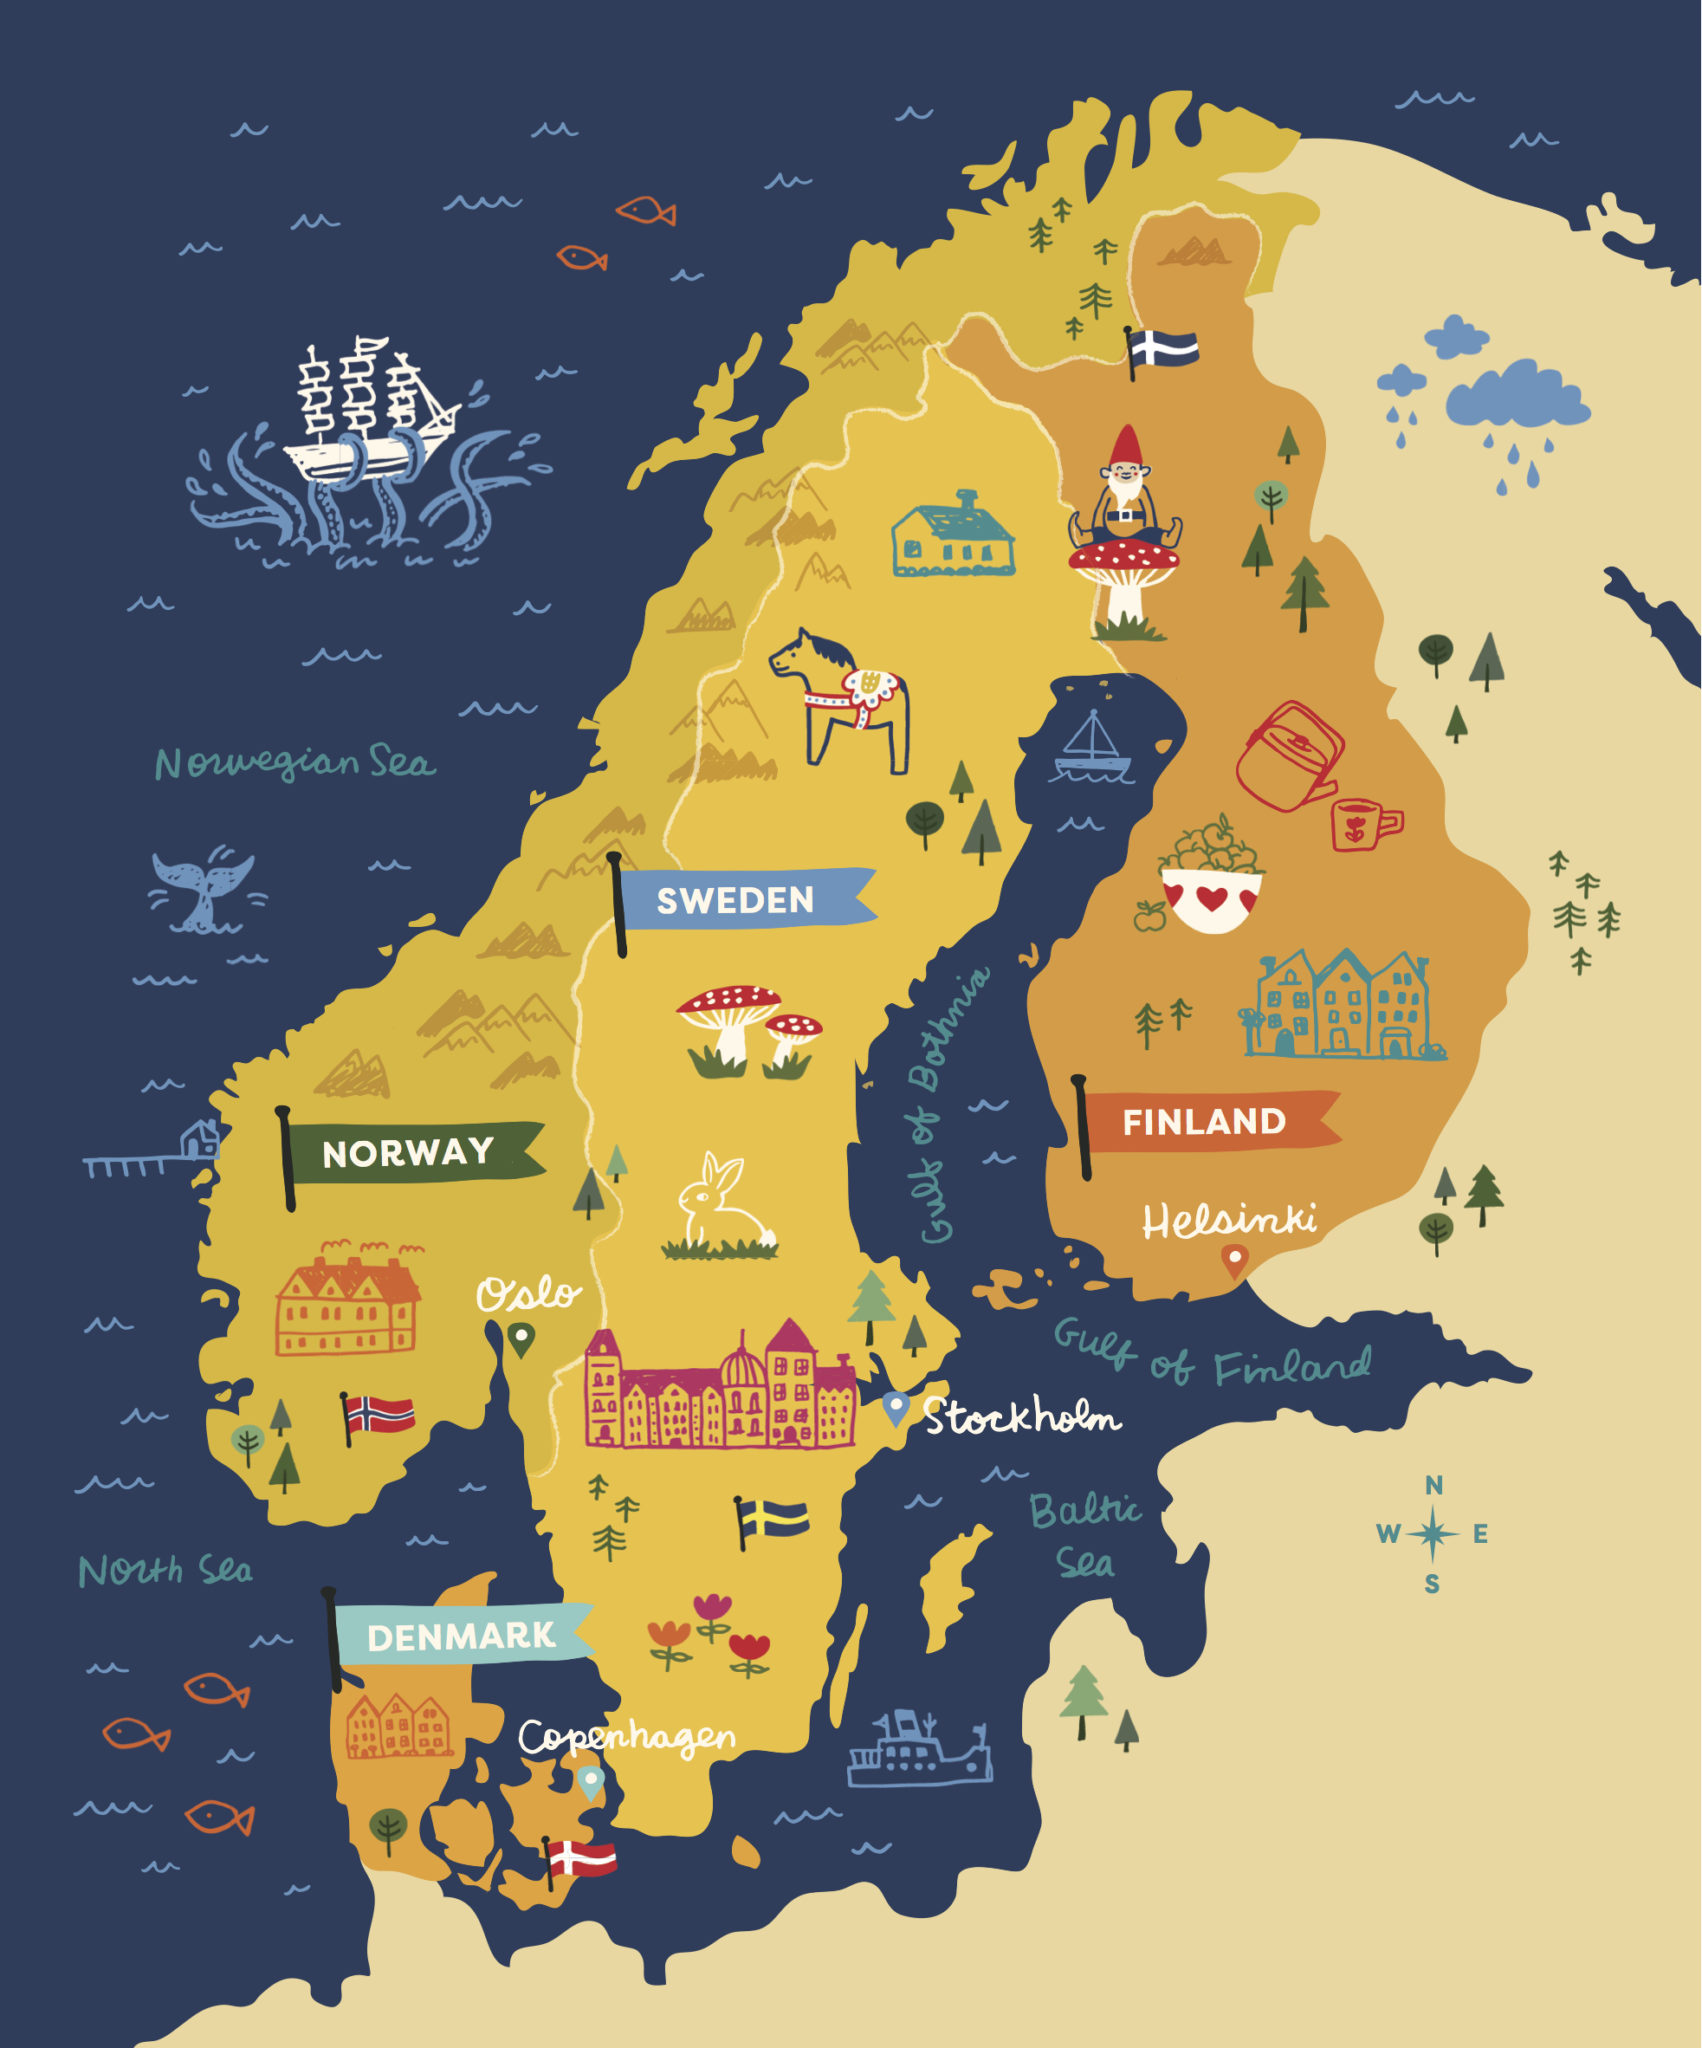 A darling, illustrated map from Scandinavian Gatherings by Melissa Bahen (September 2016, Sasquatch Books)